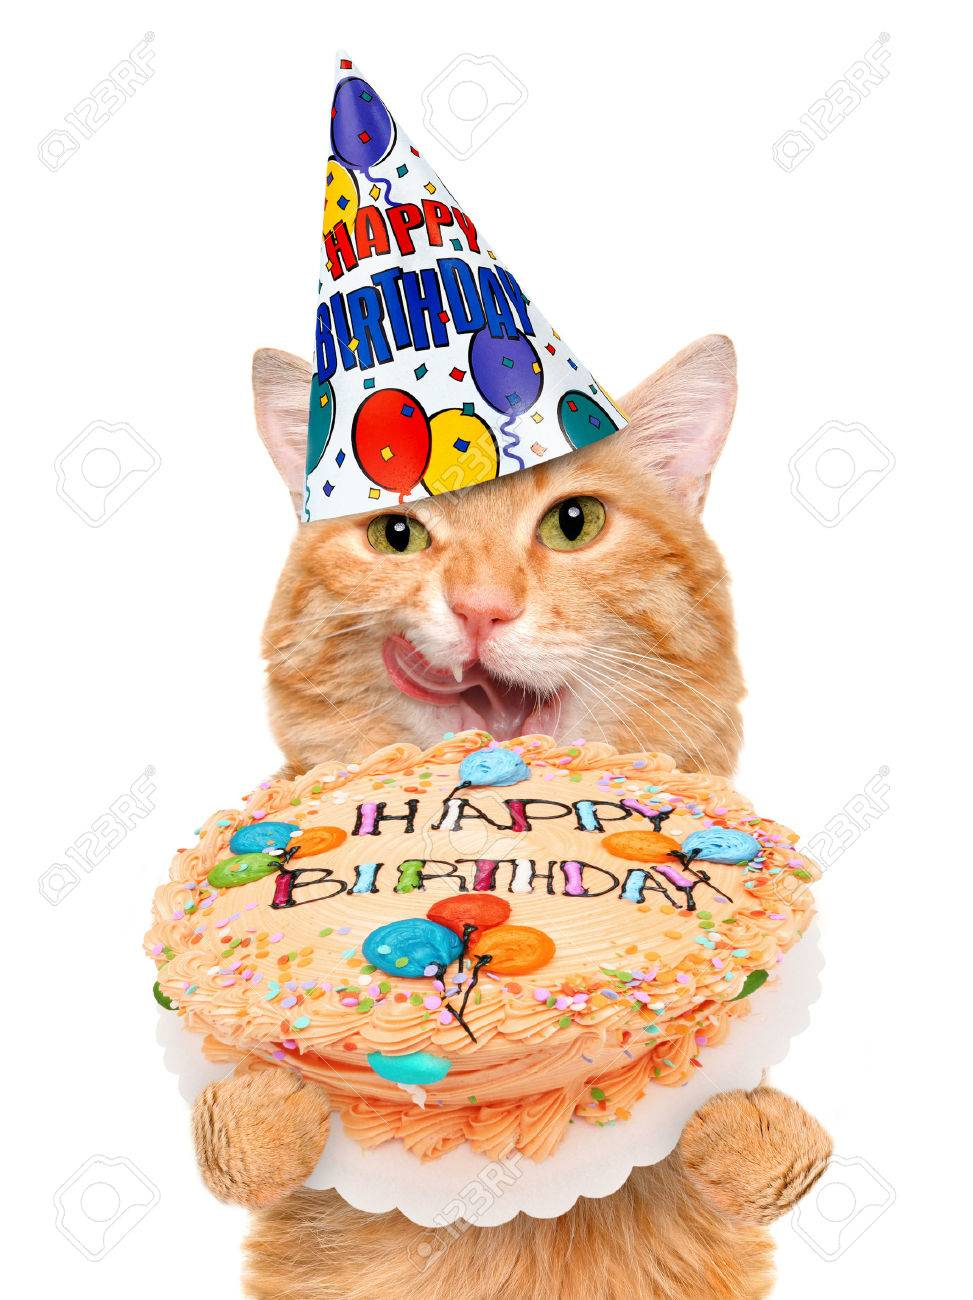 cat birthday images Birthday Cat. Stock Photo, Picture And Royalty Free Image. Image  cat birthday images